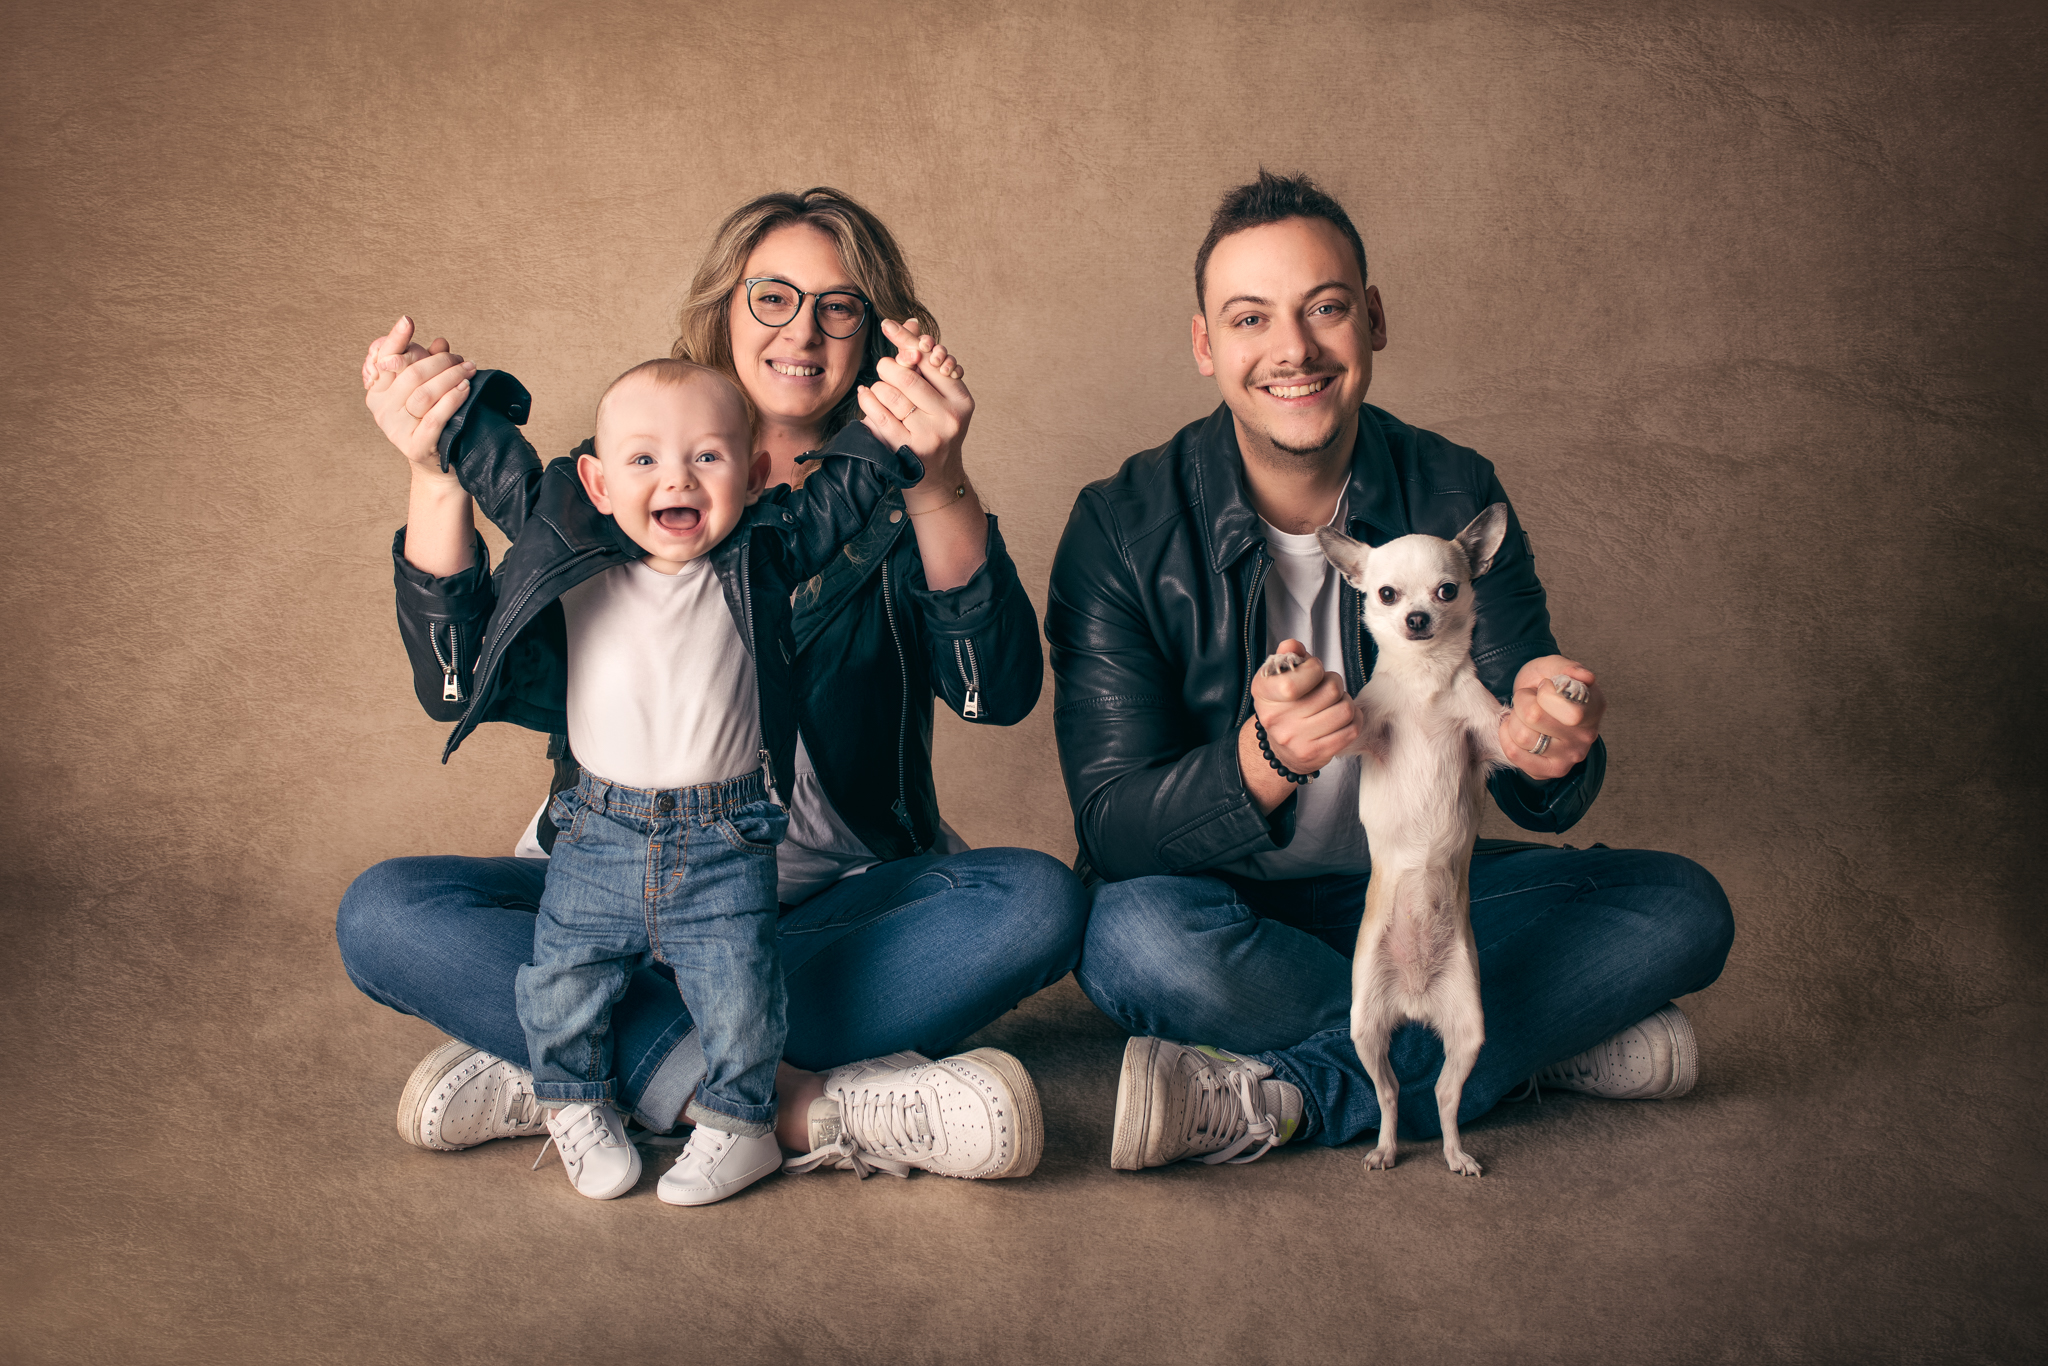 2021-01-26_Shooting Famille Eliot_2048px-14